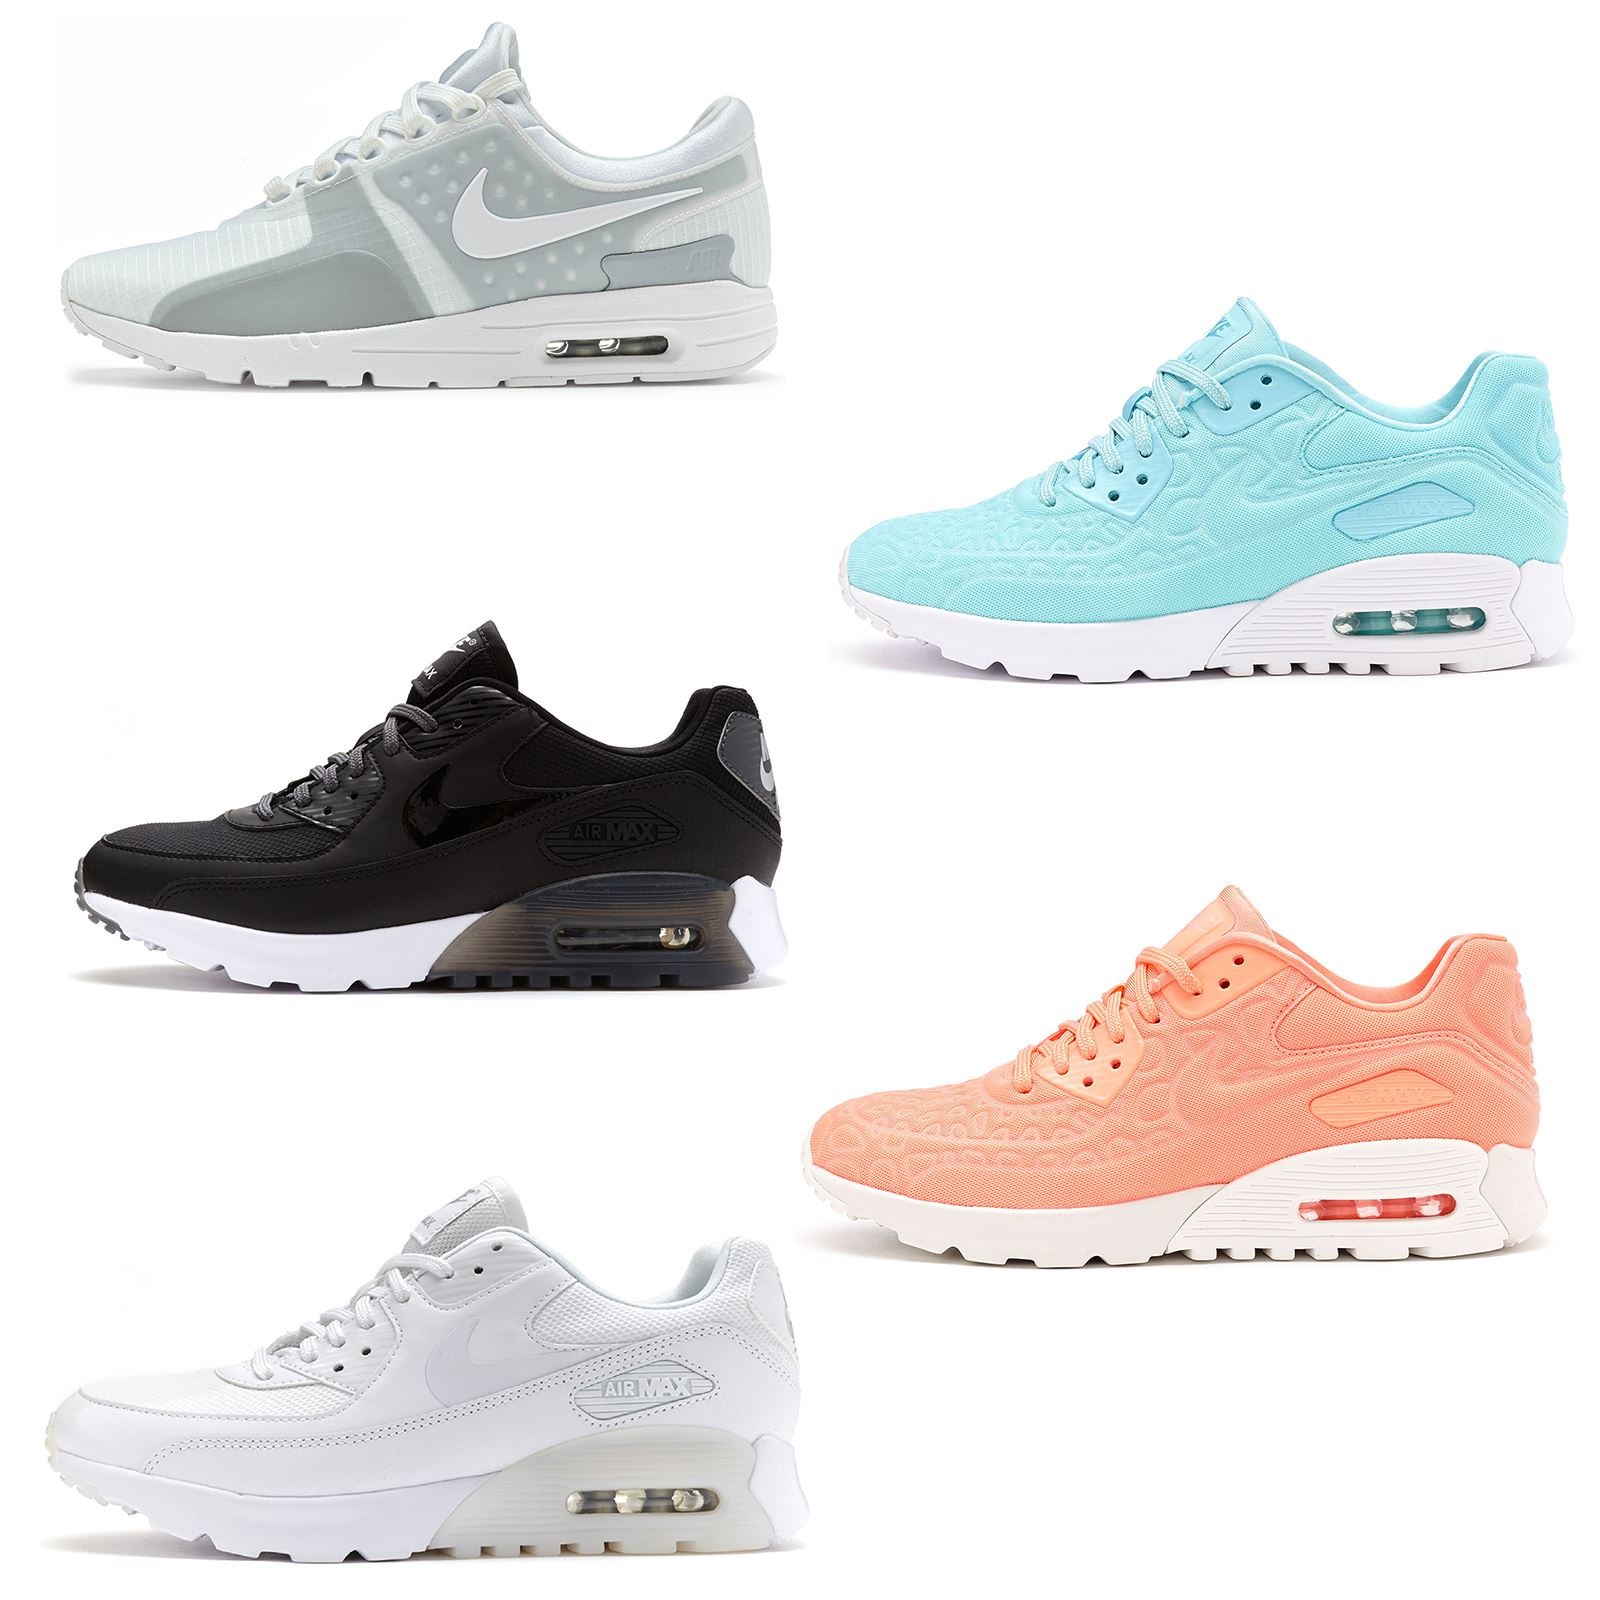 Details about Women Nike Air Max 90 Essential Premium Lunar Leather Suede  Trainers All Sizes 4a1a4e7f0